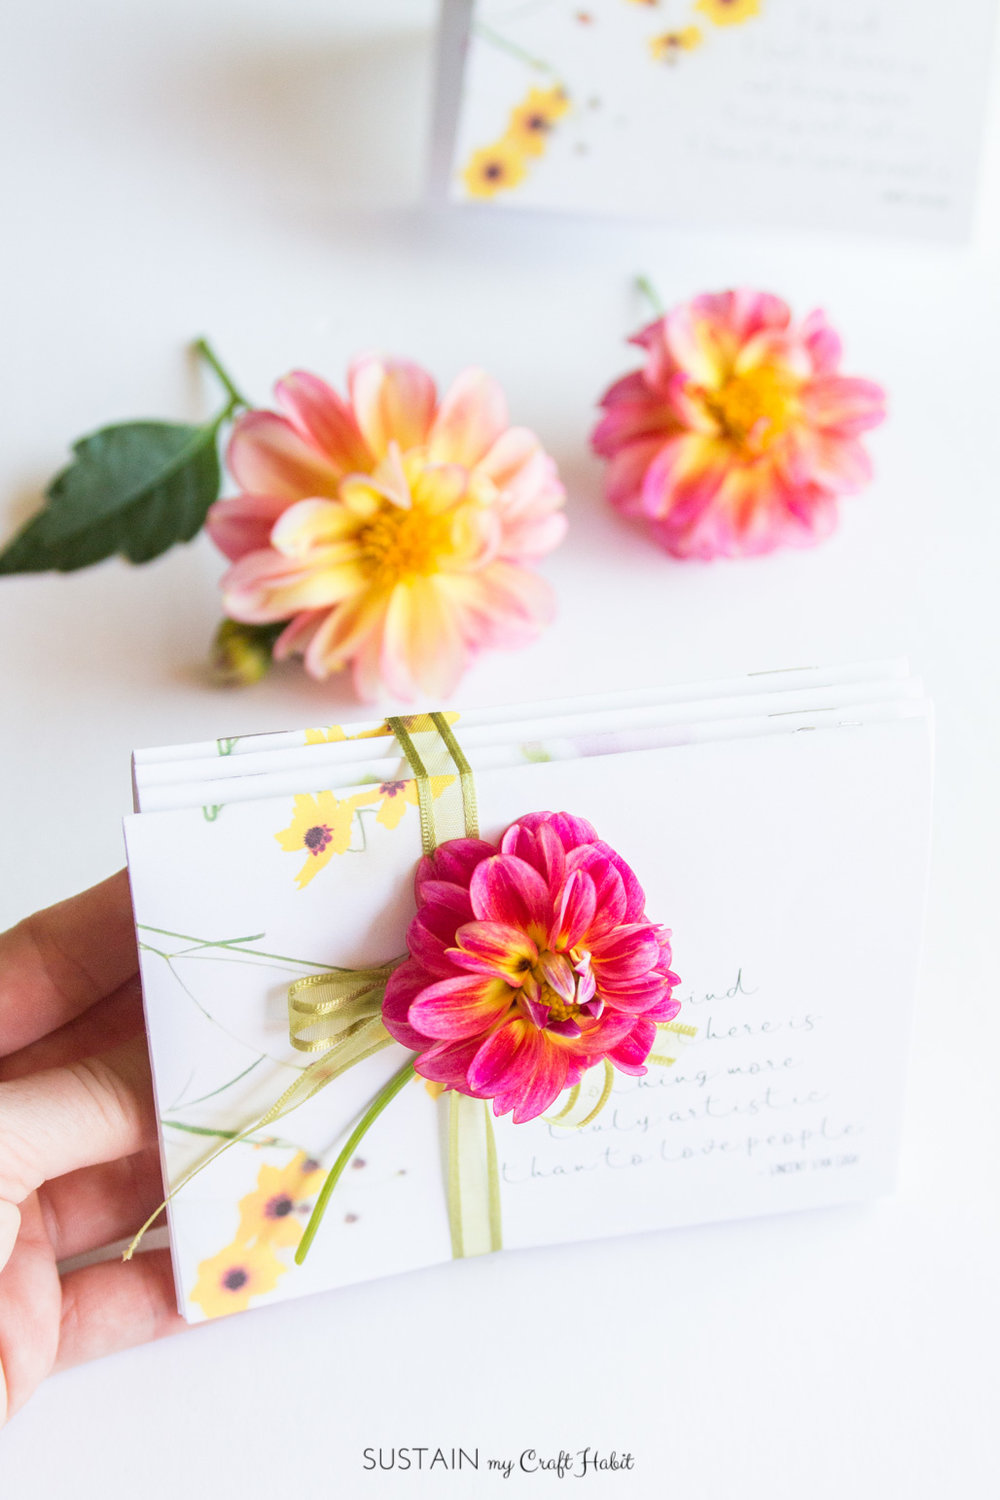 Make your own mini note cards with these free printable templates. Great DIY gift idea.